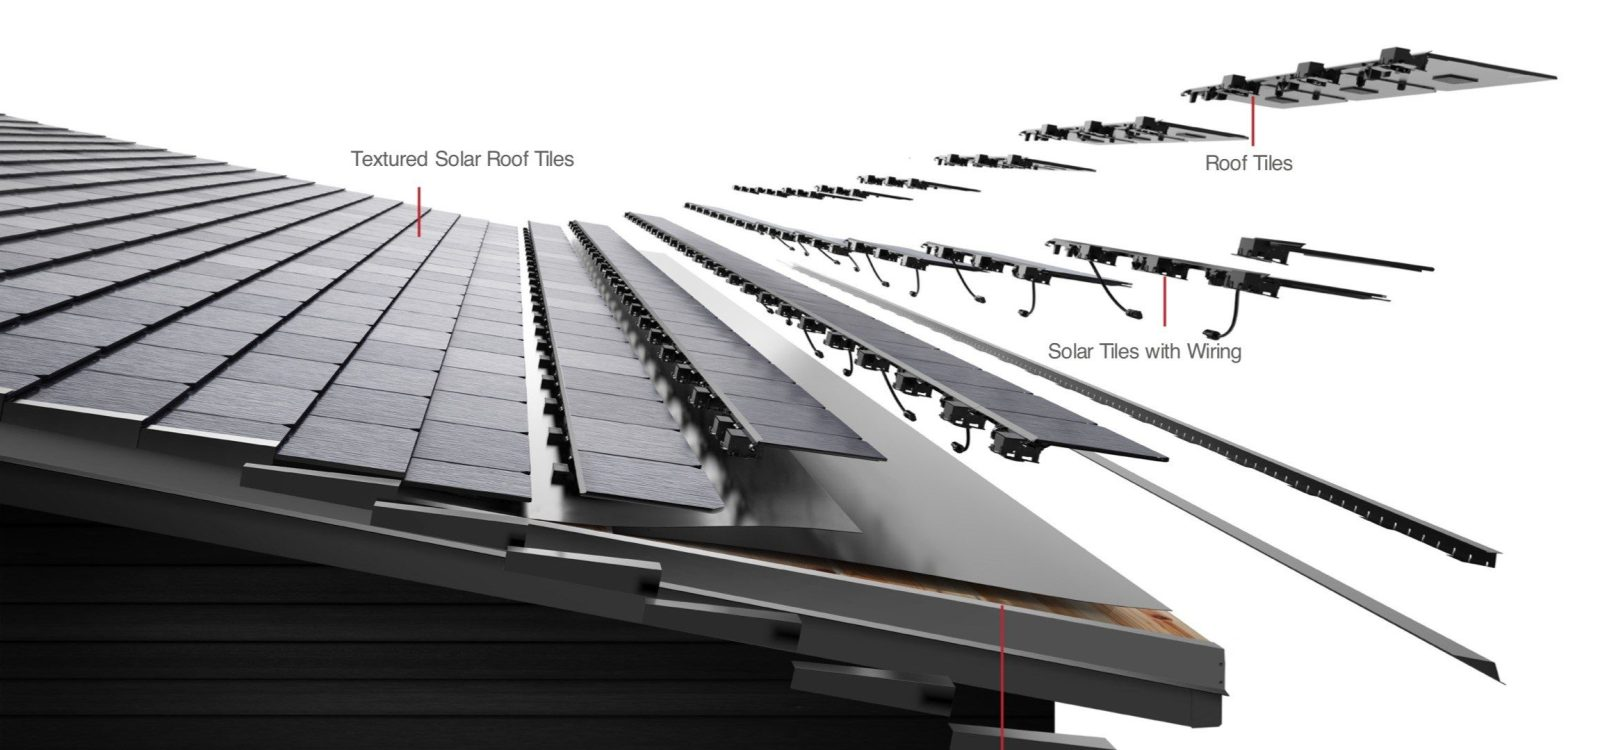 Tesla is going to launch new version of its solar roof tiles tomorrow